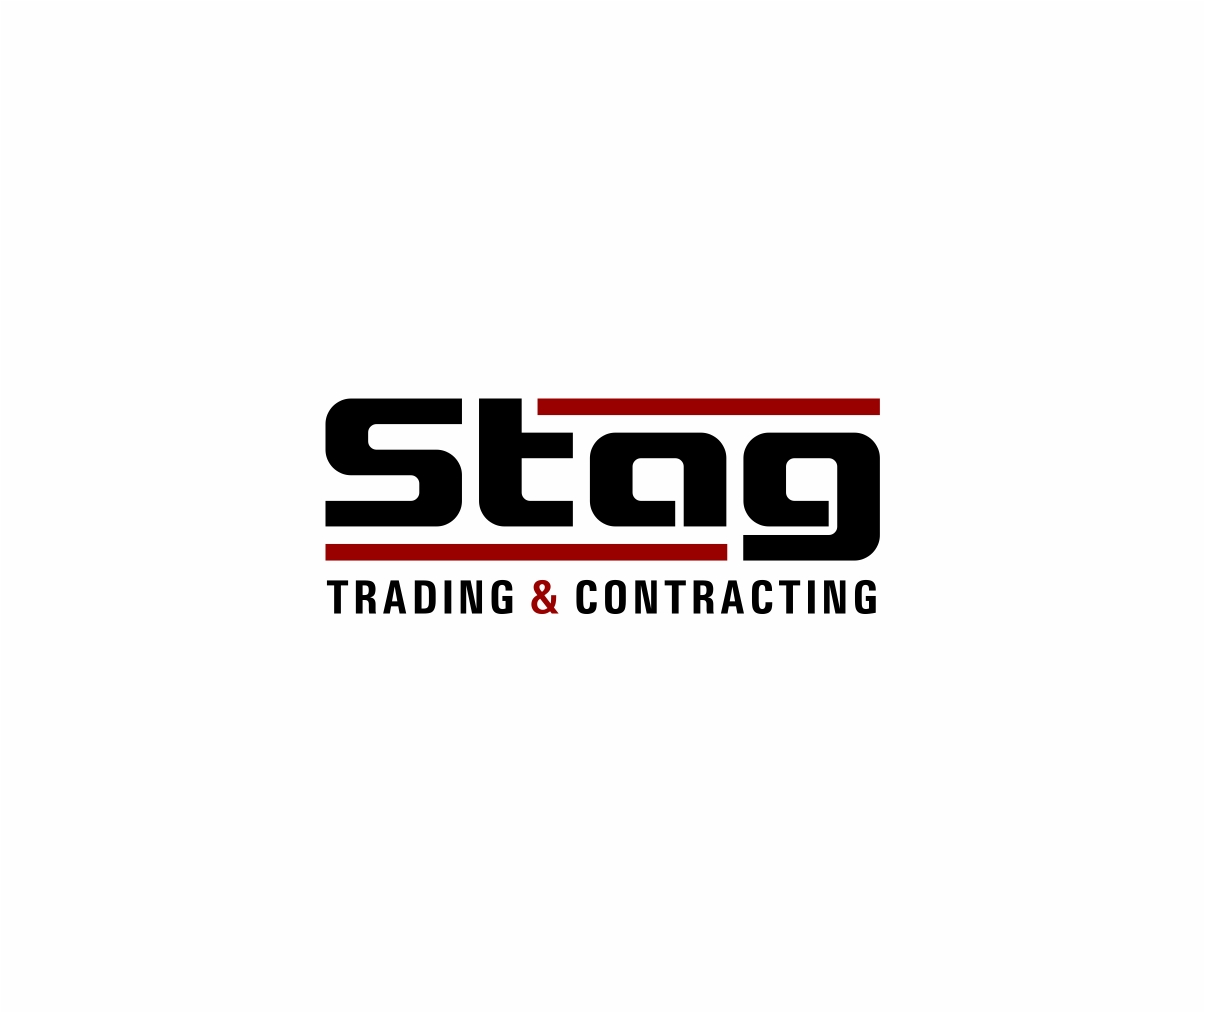 Logo Design by haidu - Entry No. 278 in the Logo Design Contest Captivating Logo Design for STAG Trading & Contracting.